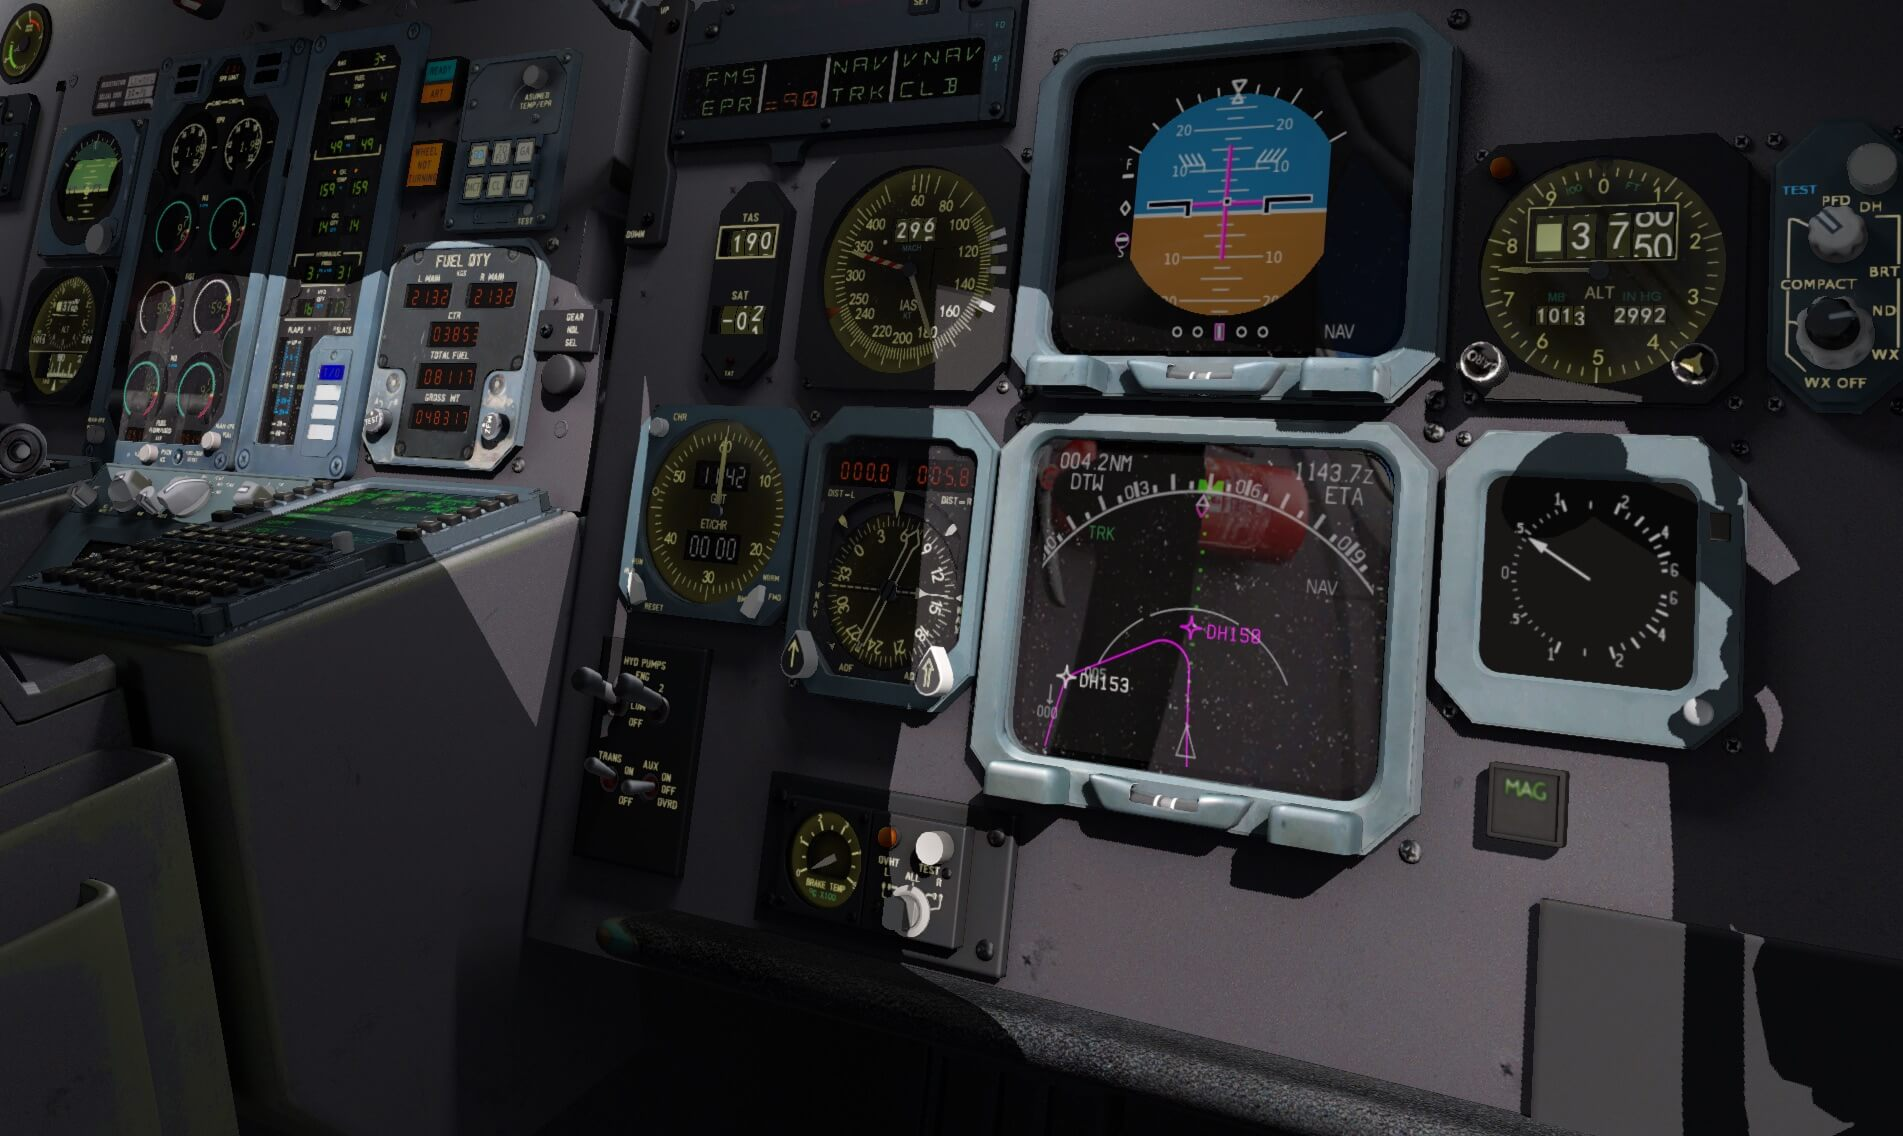 Rotate-MD-80-XP11_20